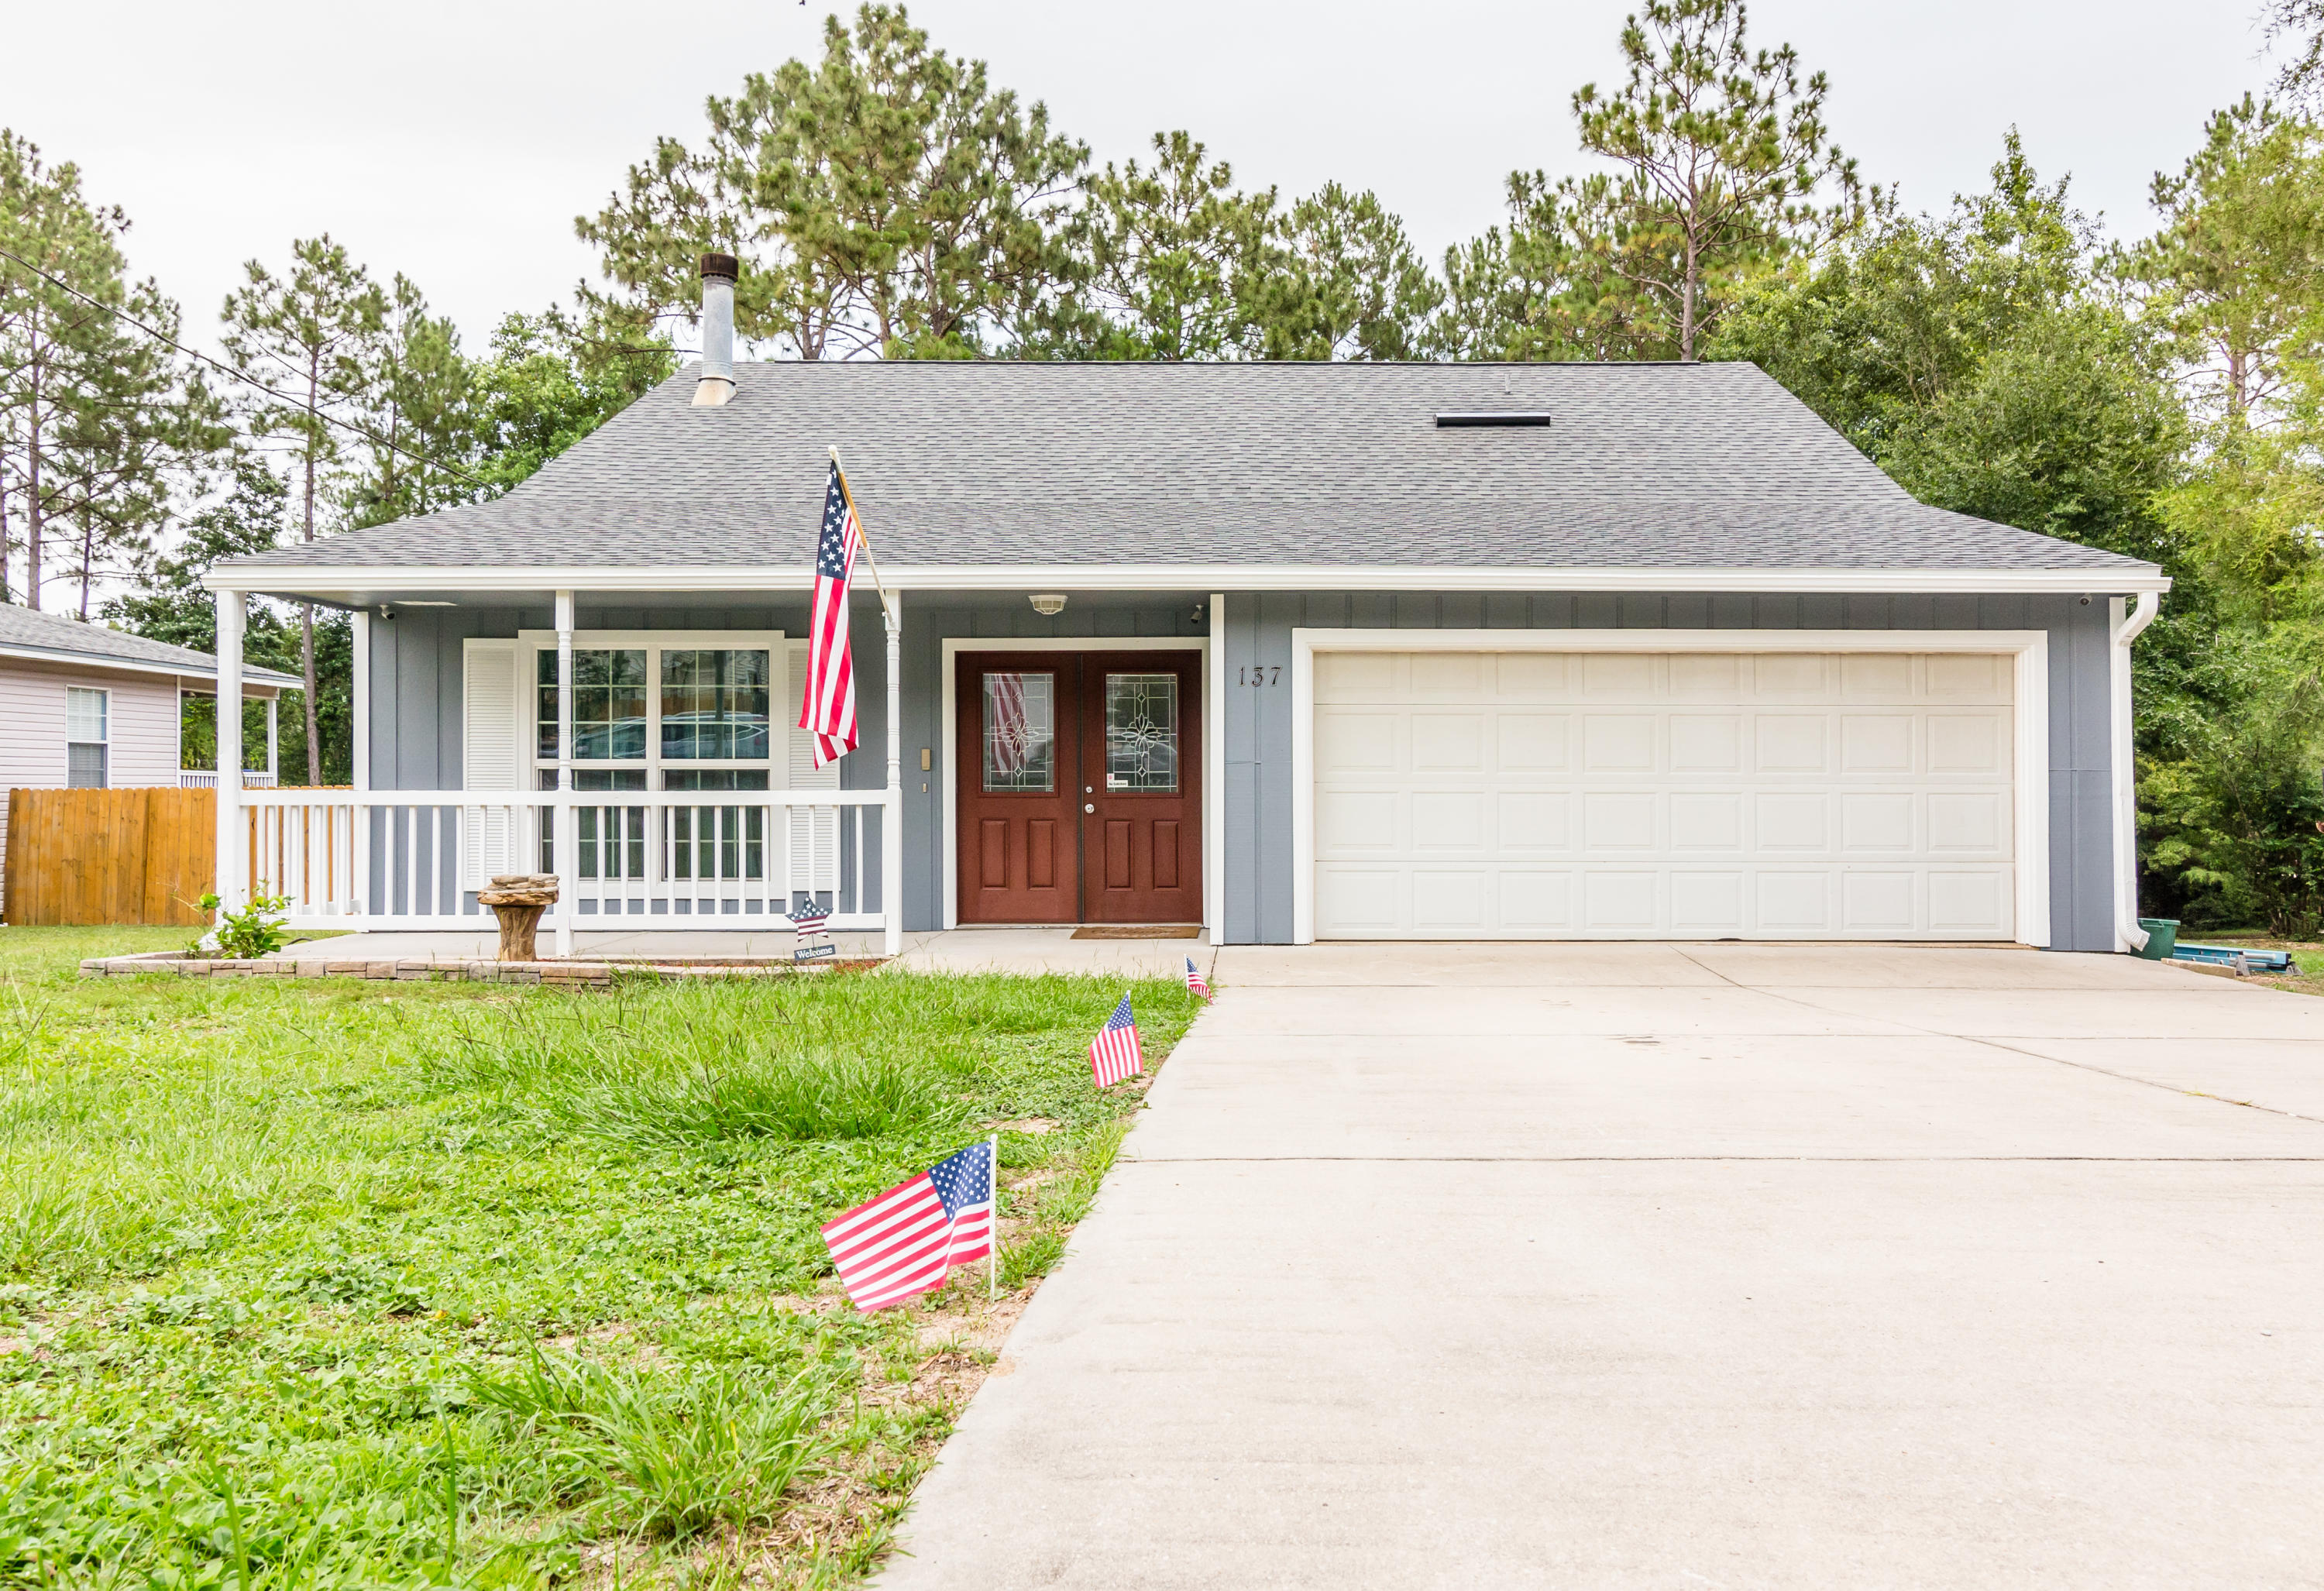 Photo of home for sale at 137 Palmetto, Crestview FL